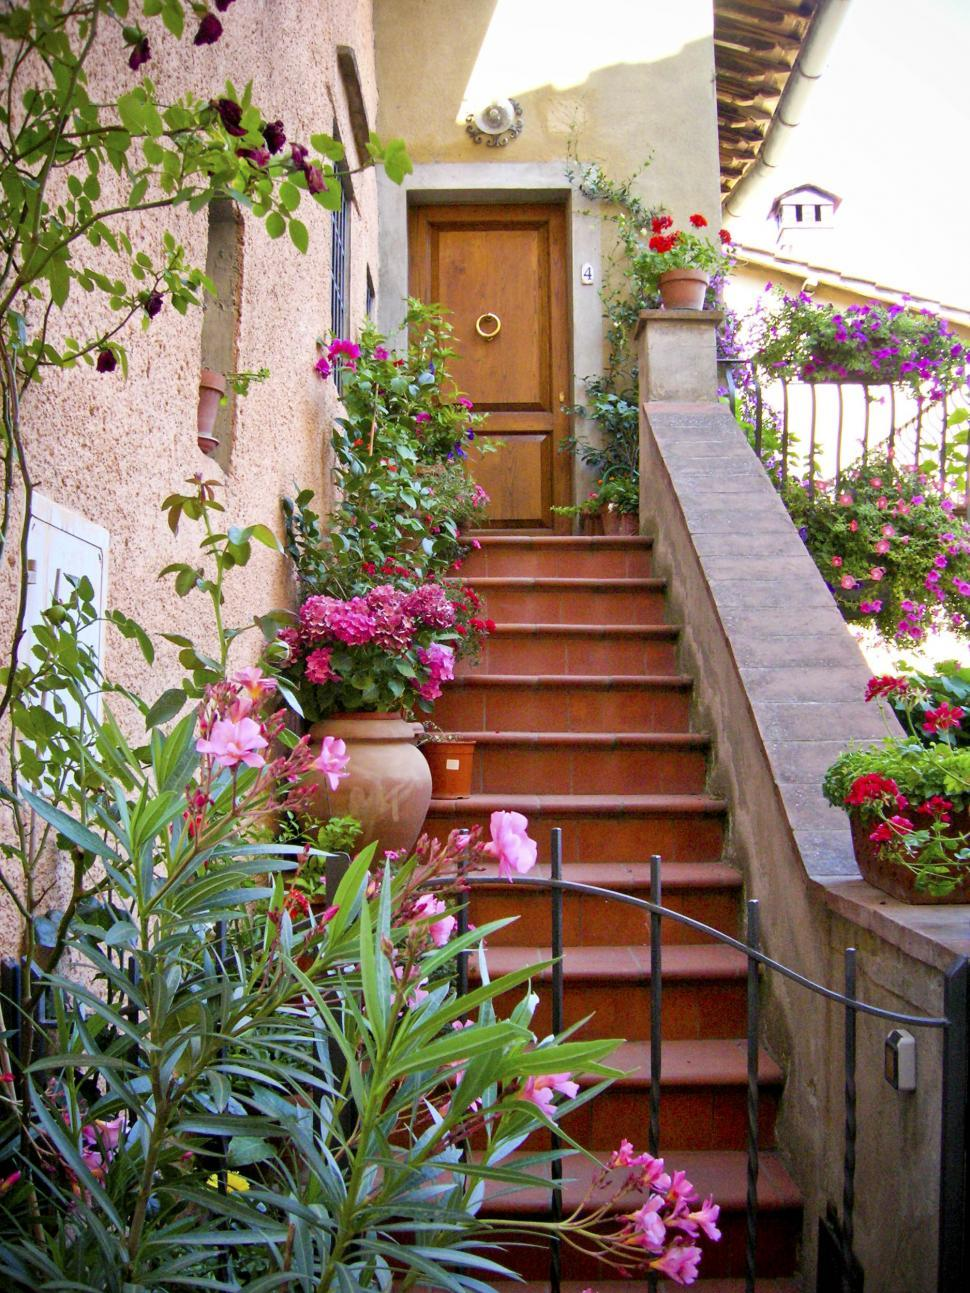 Download Free Stock HD Photo of flowers on stairs Online